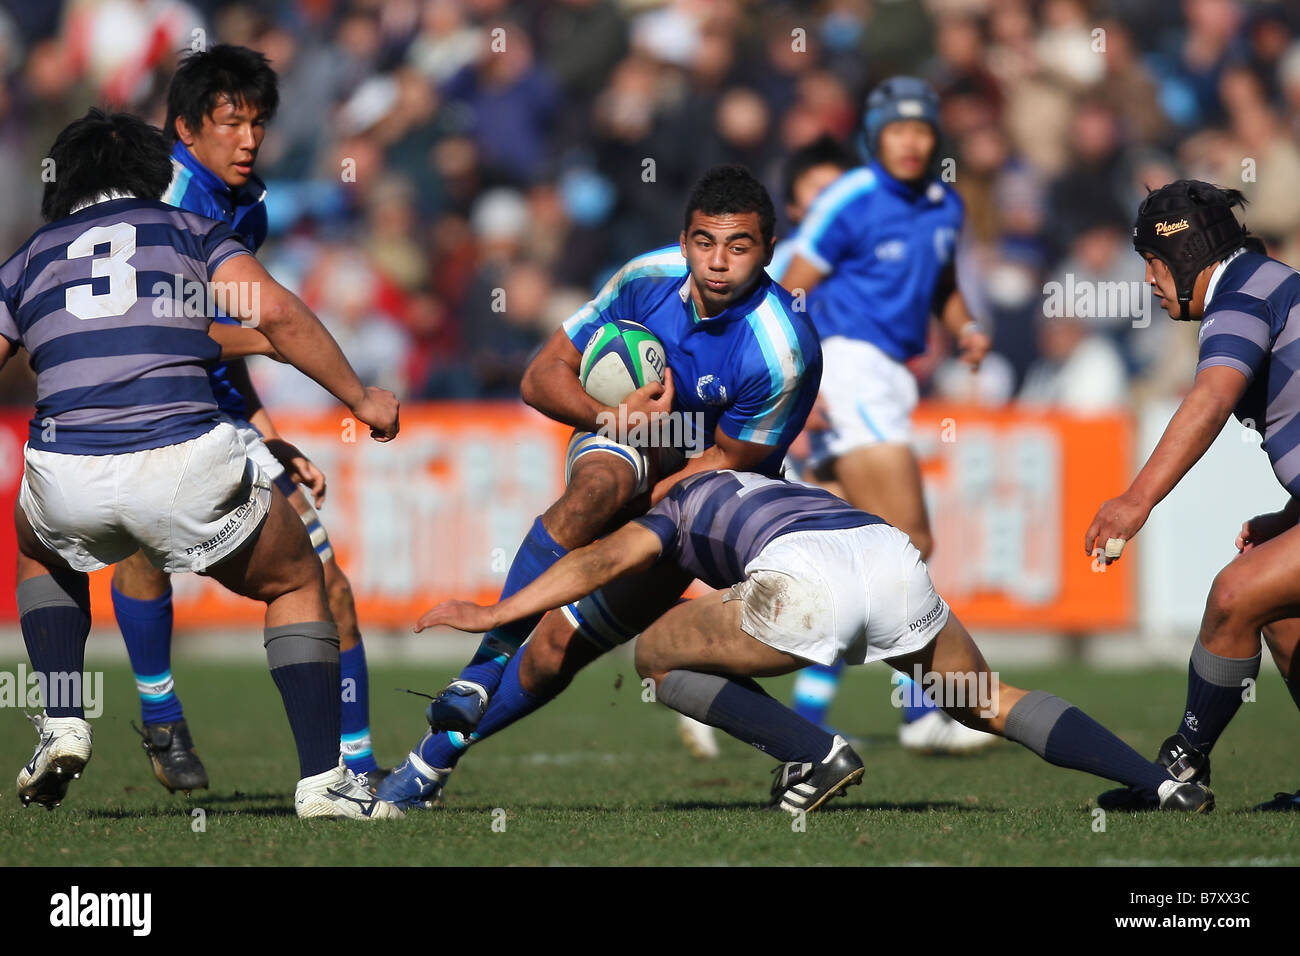 Michael Leitch Tokai DECEMBER 28 2008 Rugby The 45th All Japan University Rugby Championship match between Tokai - Stock Image